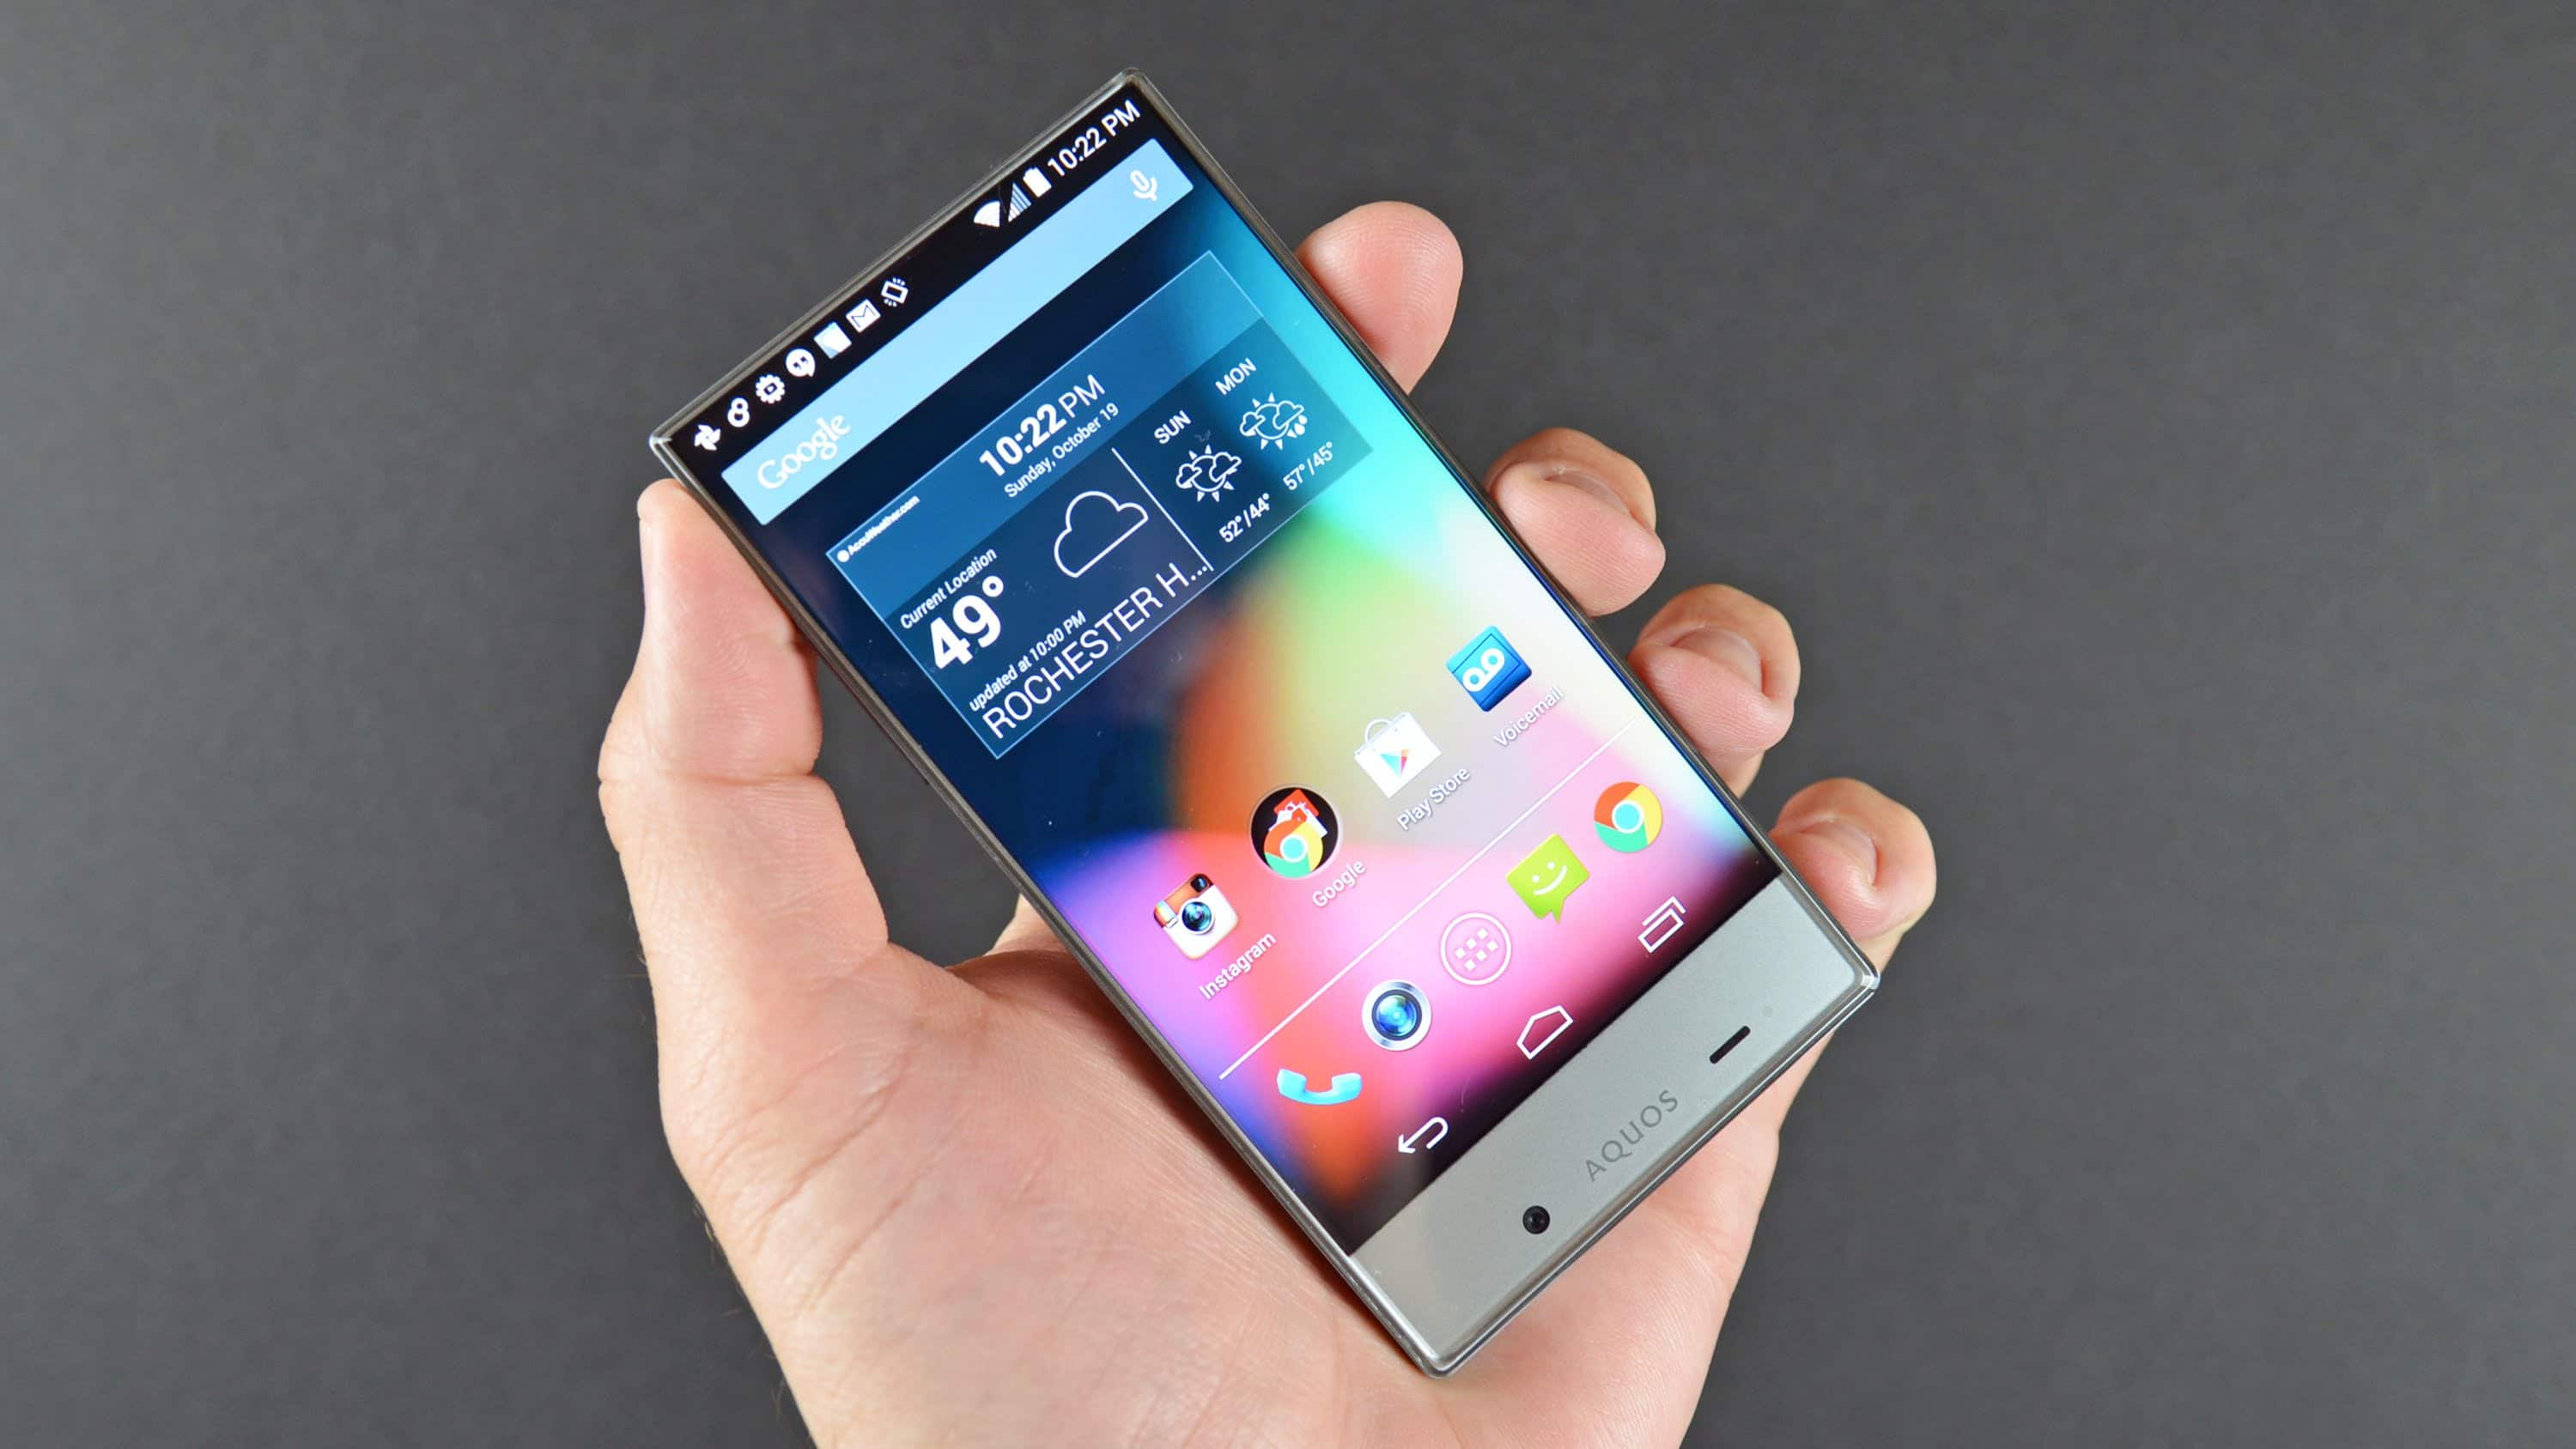 Sharp Aquos Crystal (Refurbished) $4.99 from Textnow YMMV